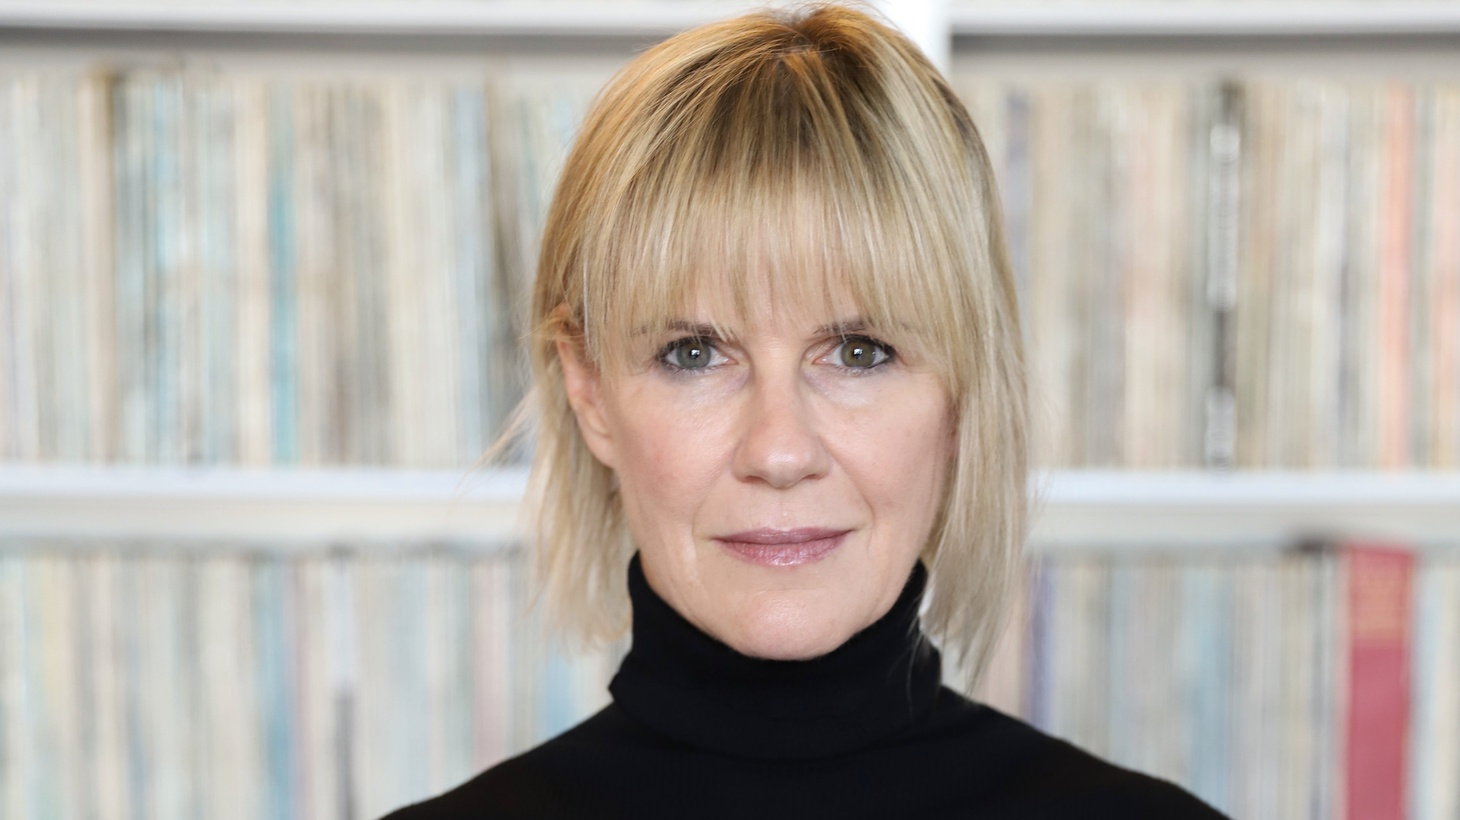 KCRW's signature music program features new releases, live performances, and artist interviews guest hosted by Anne Litt.